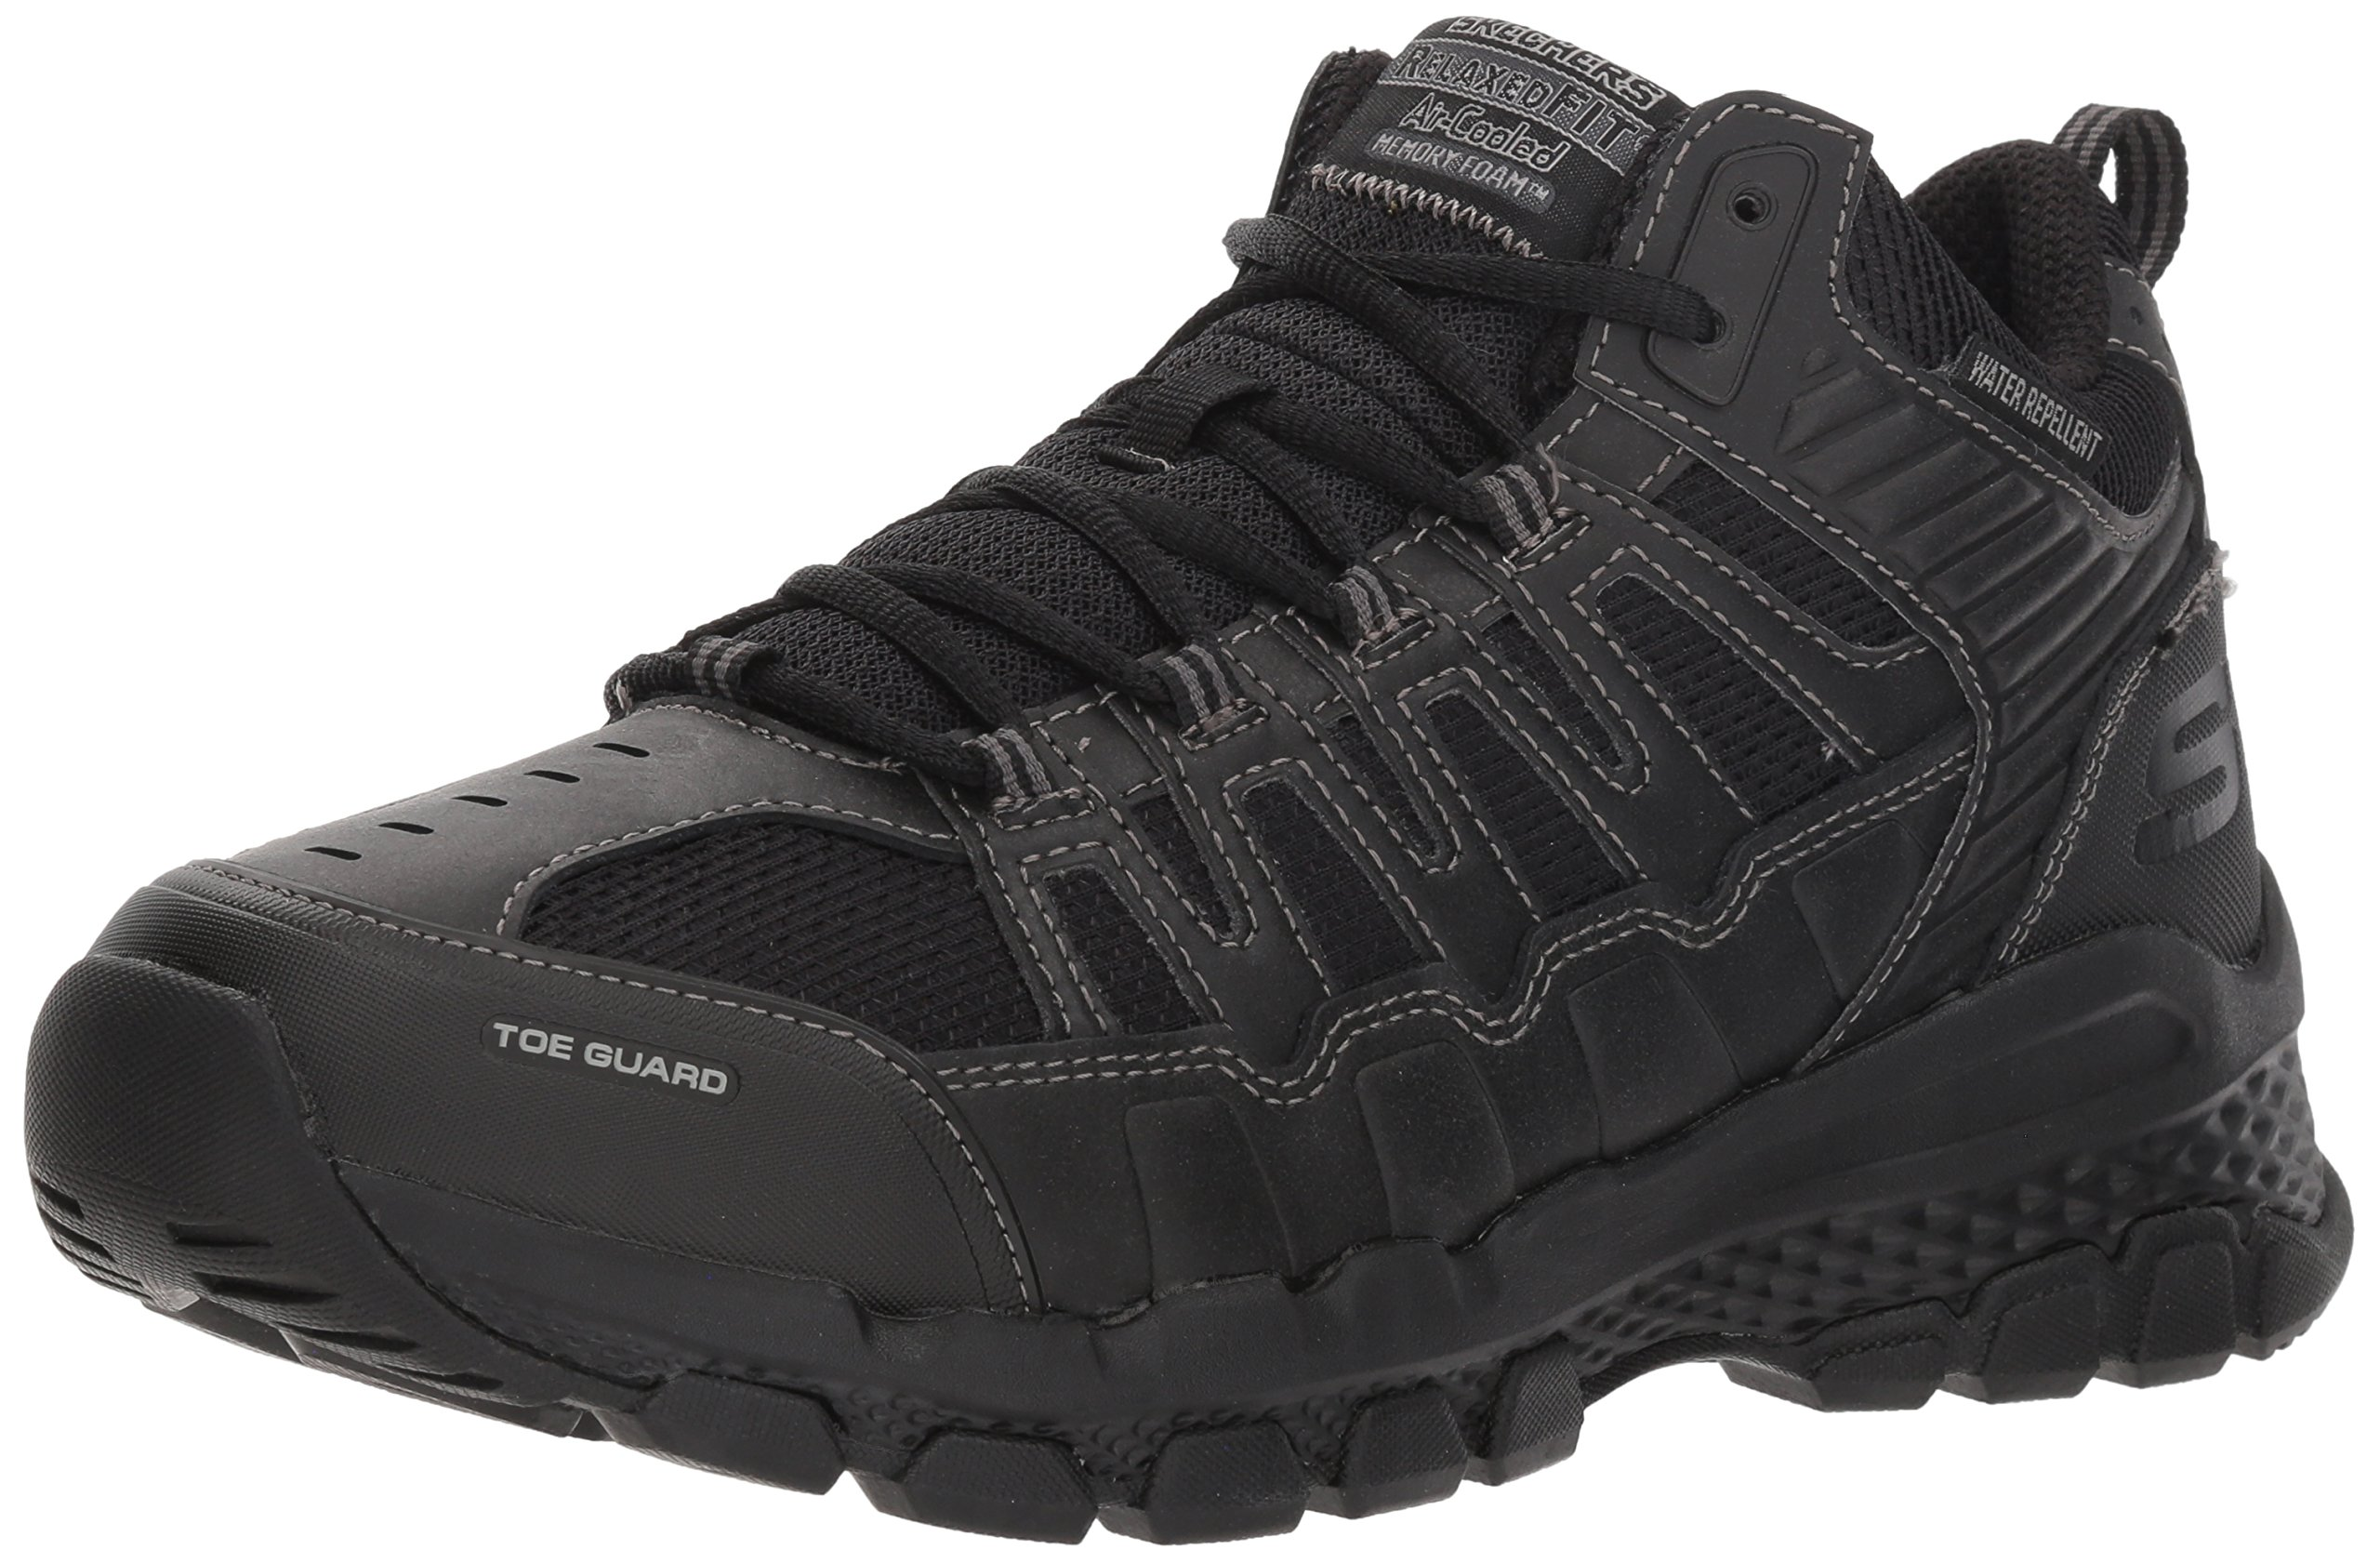 Skechers Men's Outland 2.0 Girvin Hiking Boot, Black, 9.5 M US